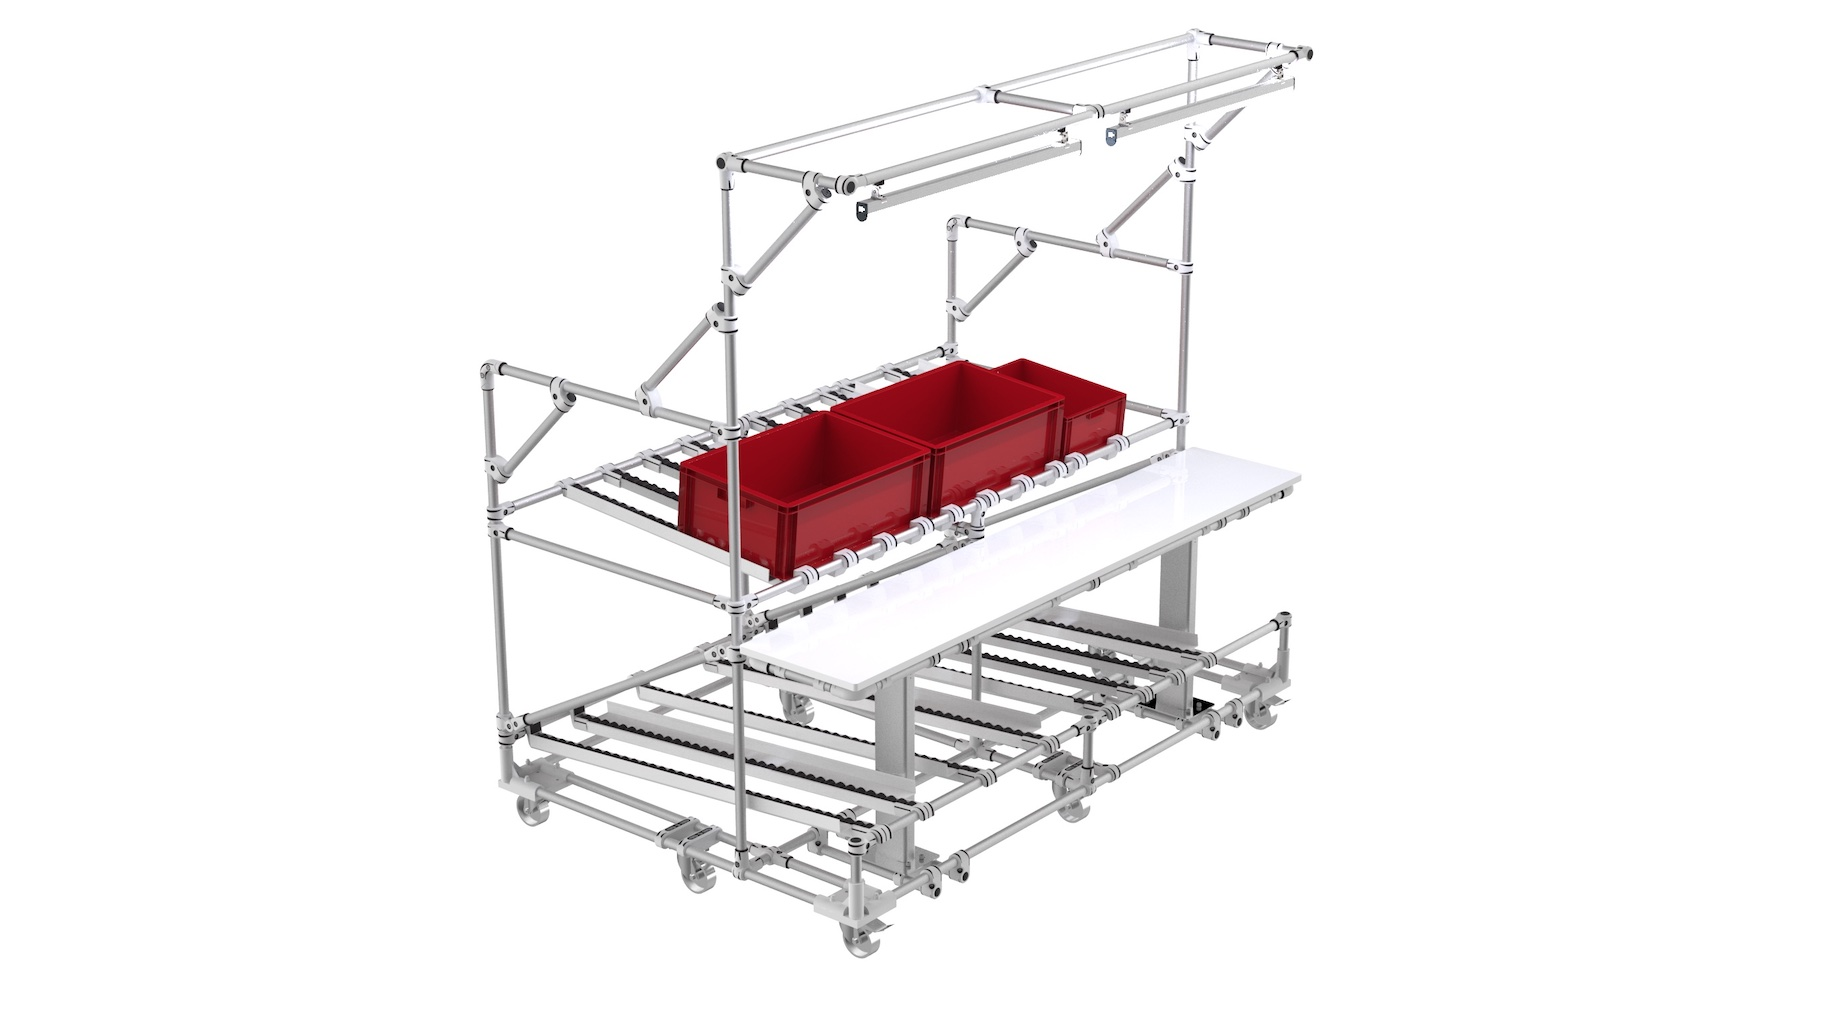 E-commerce - Mobile aluminum workbench with height powered height adjustment and doible LED lightning. FIFO function and empty return level on bottom position.